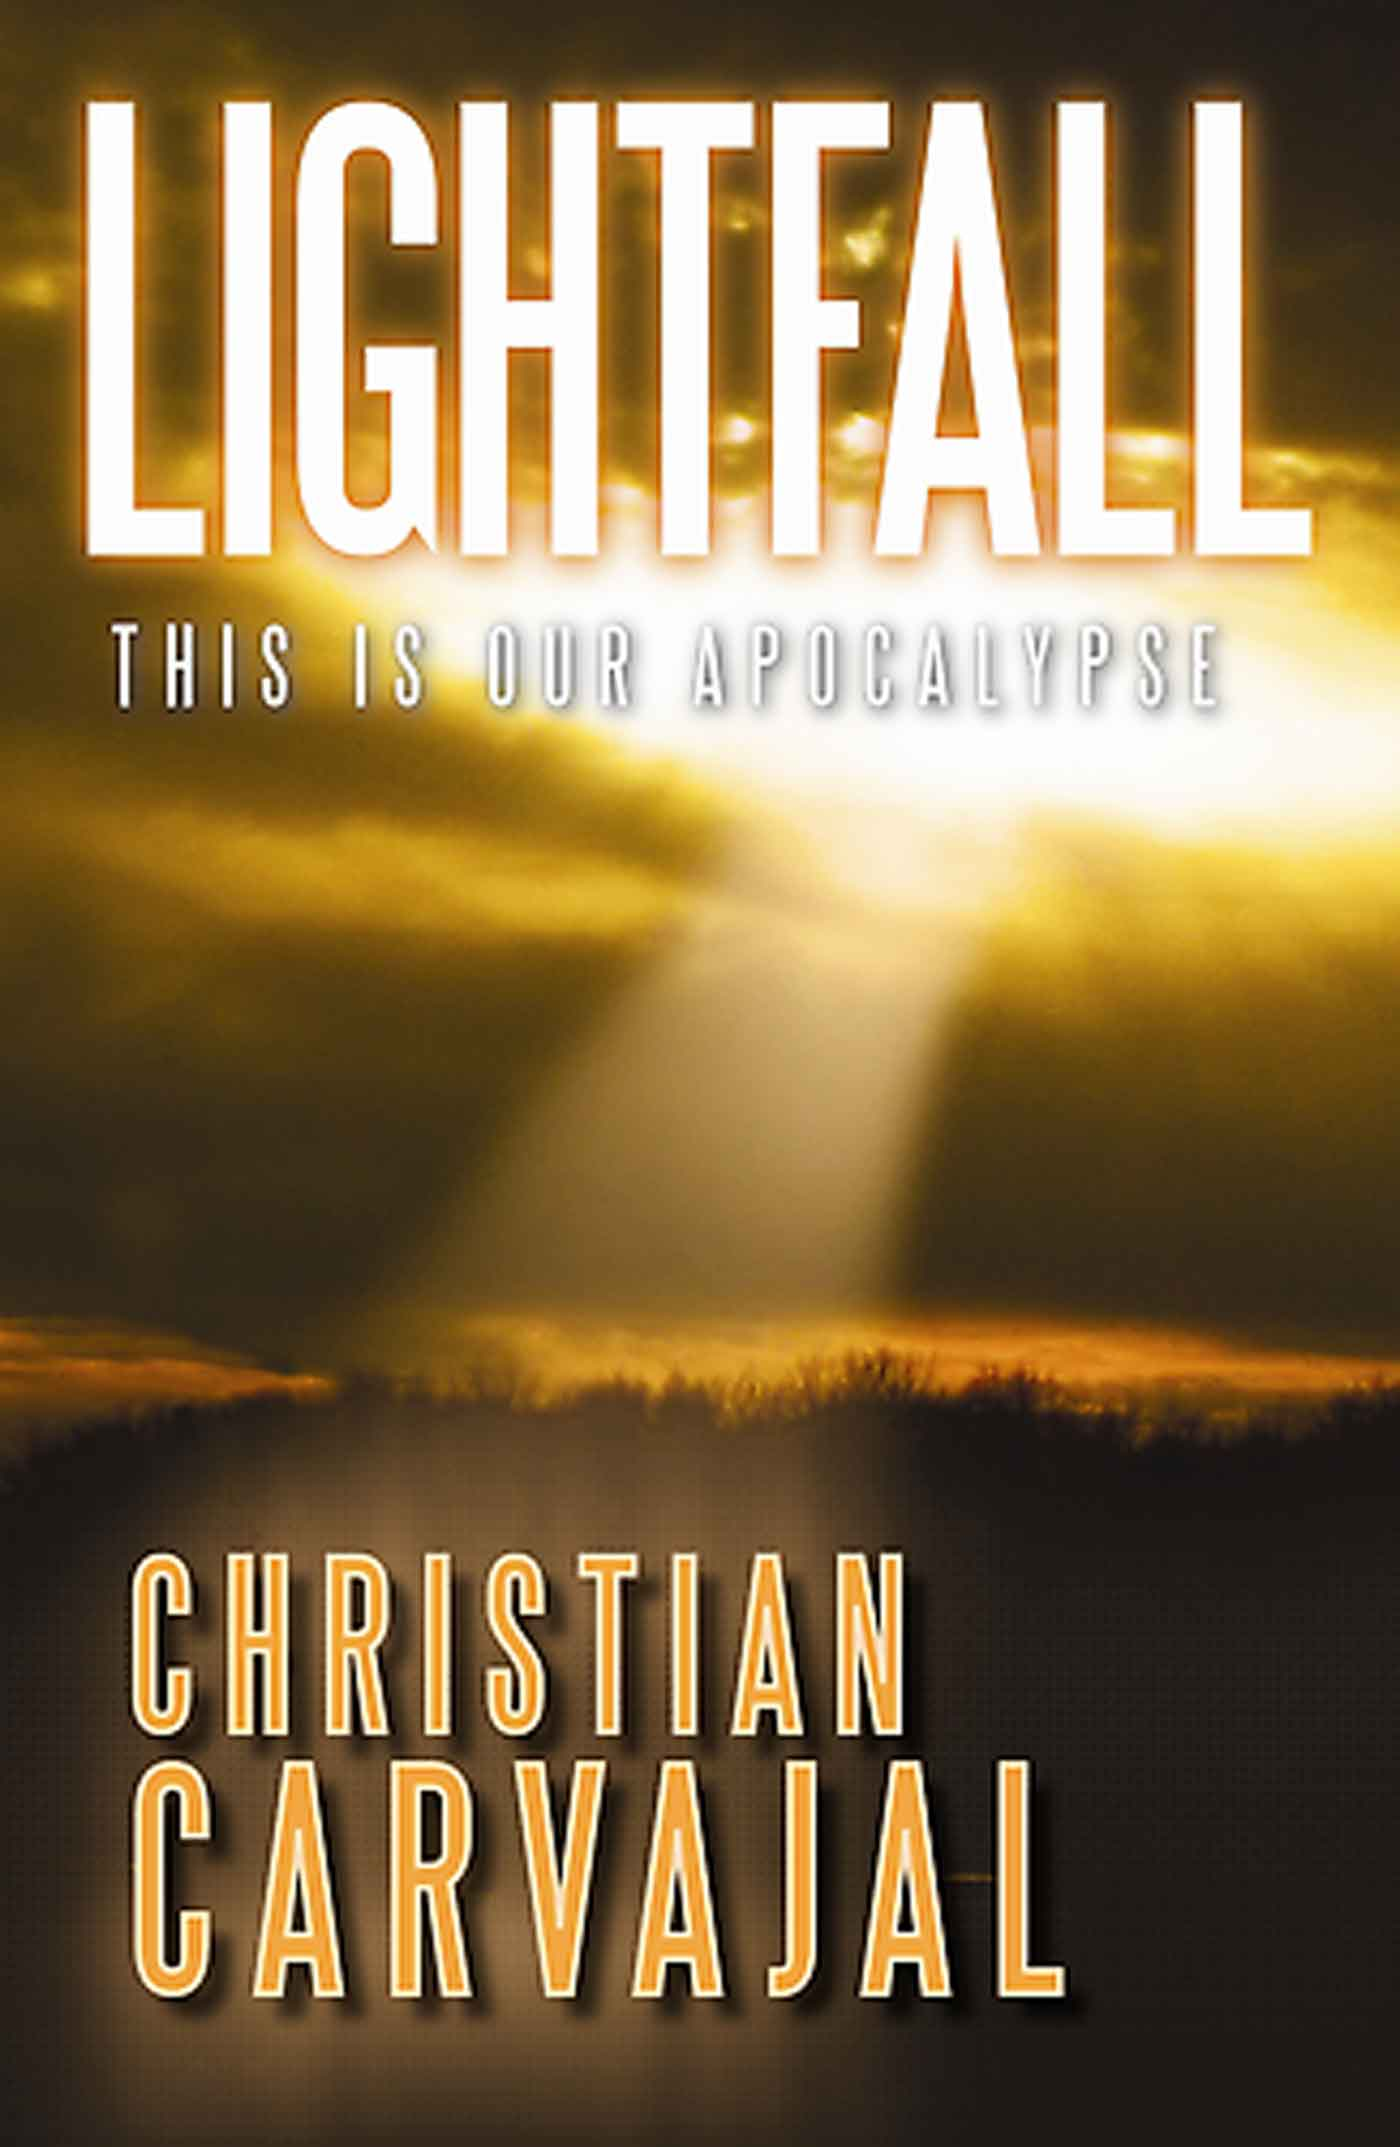 lightfallcover